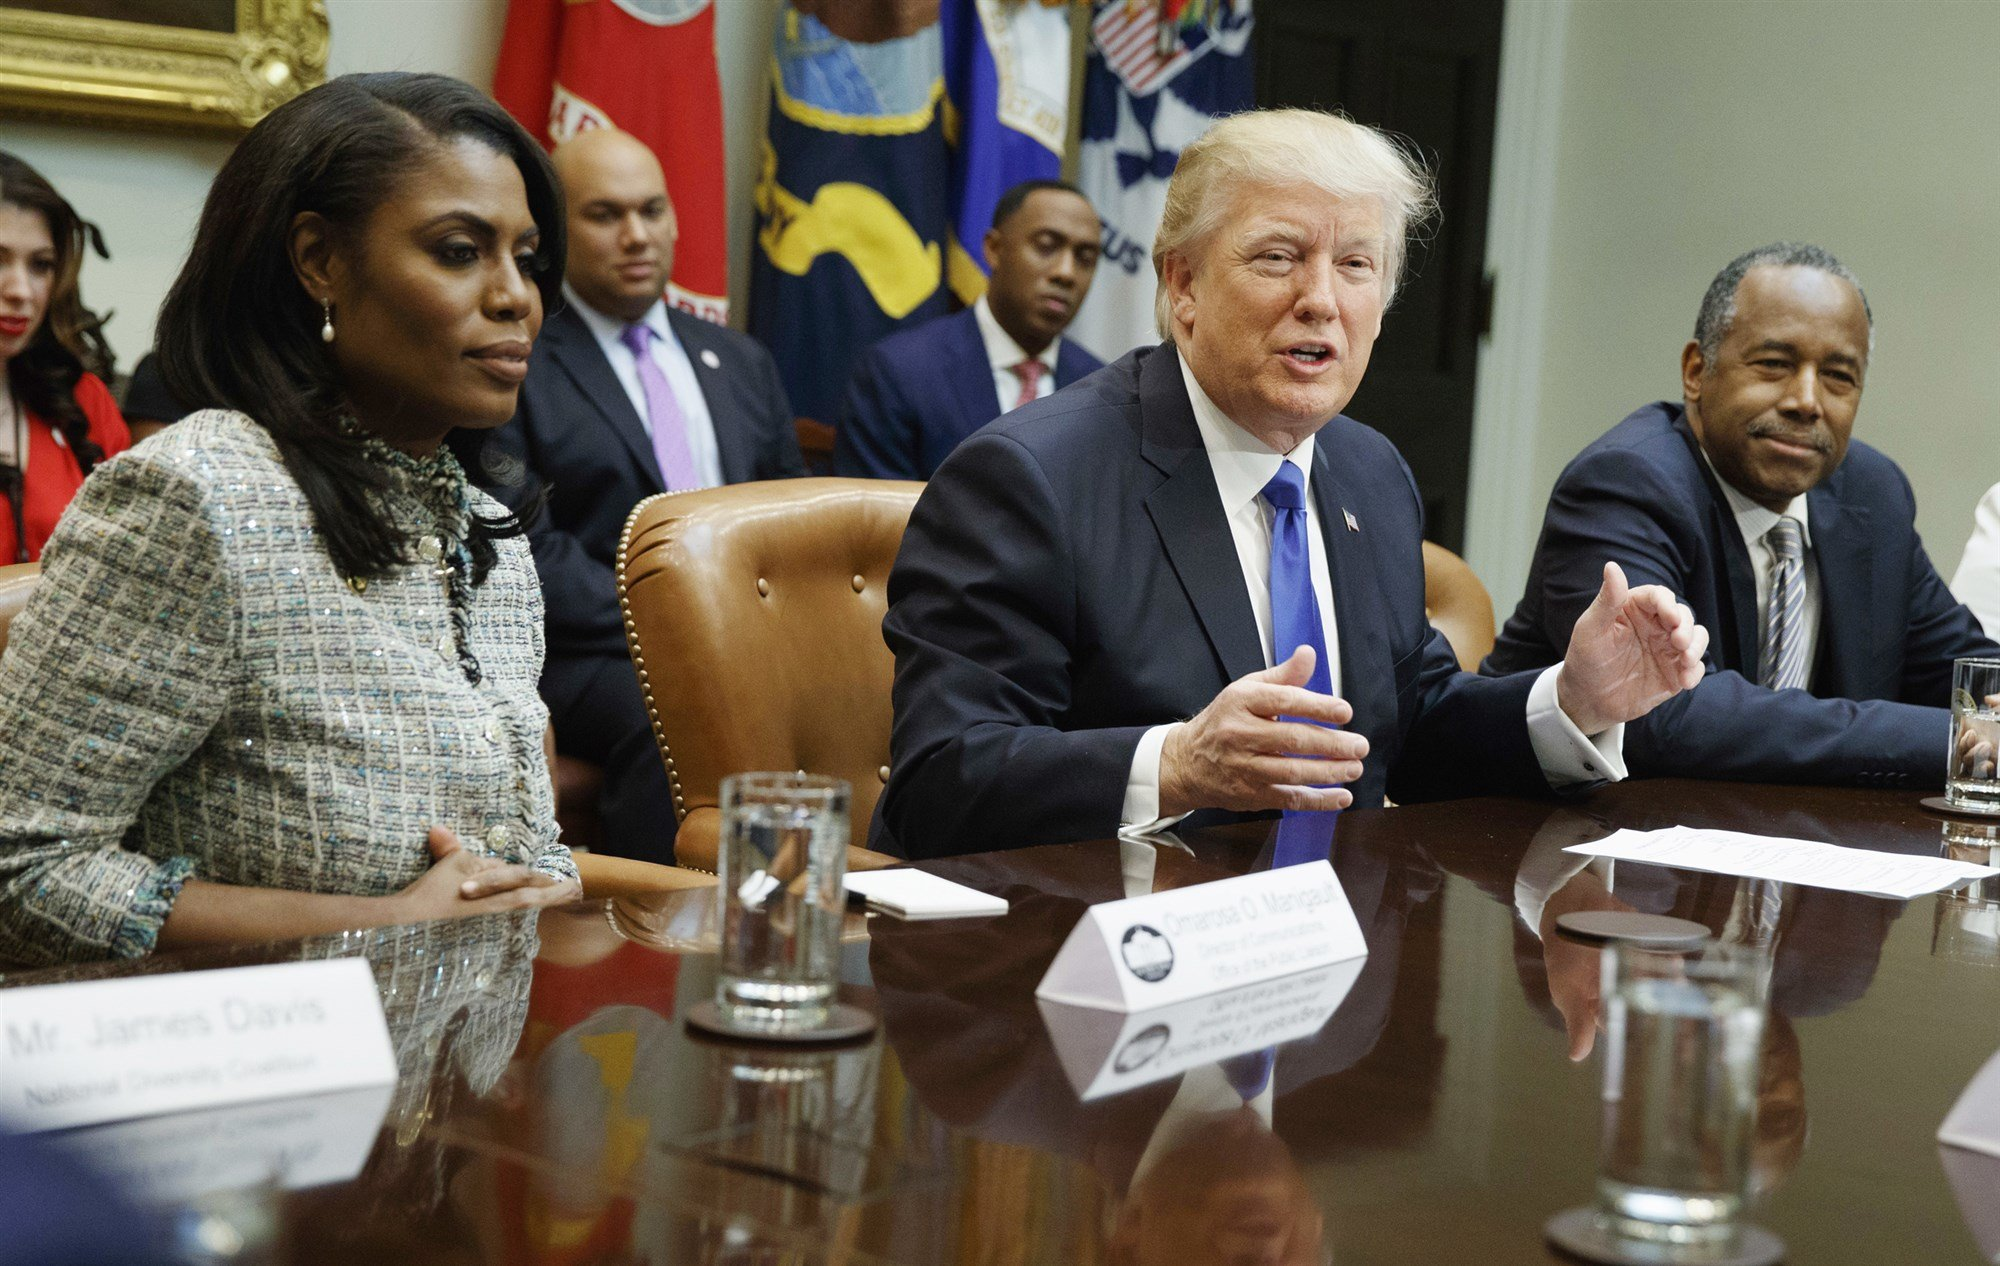 President Donald Trump with White House staffer Omarosa Manigault Newman, left, at an African American History Month meeting at the White House on Feb. 1, 2017.Evan Vucci / AP file